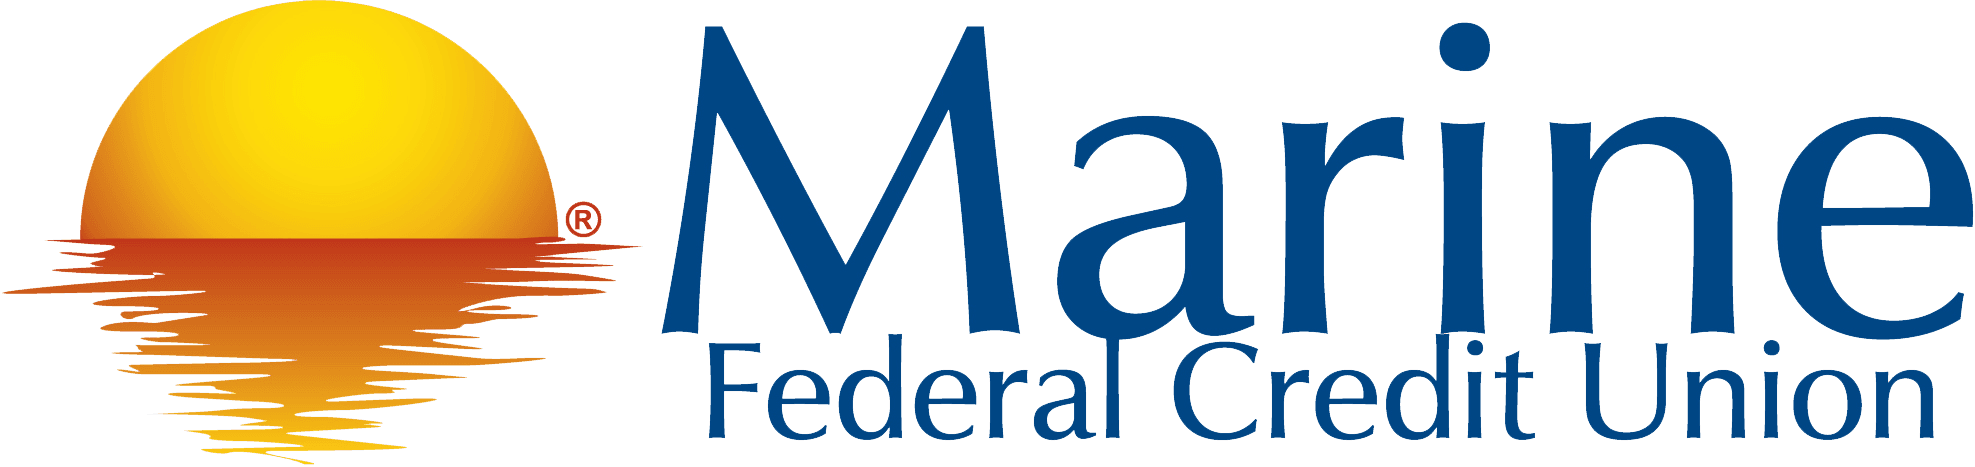 Marine Federal Credit Union logo Opens in new window